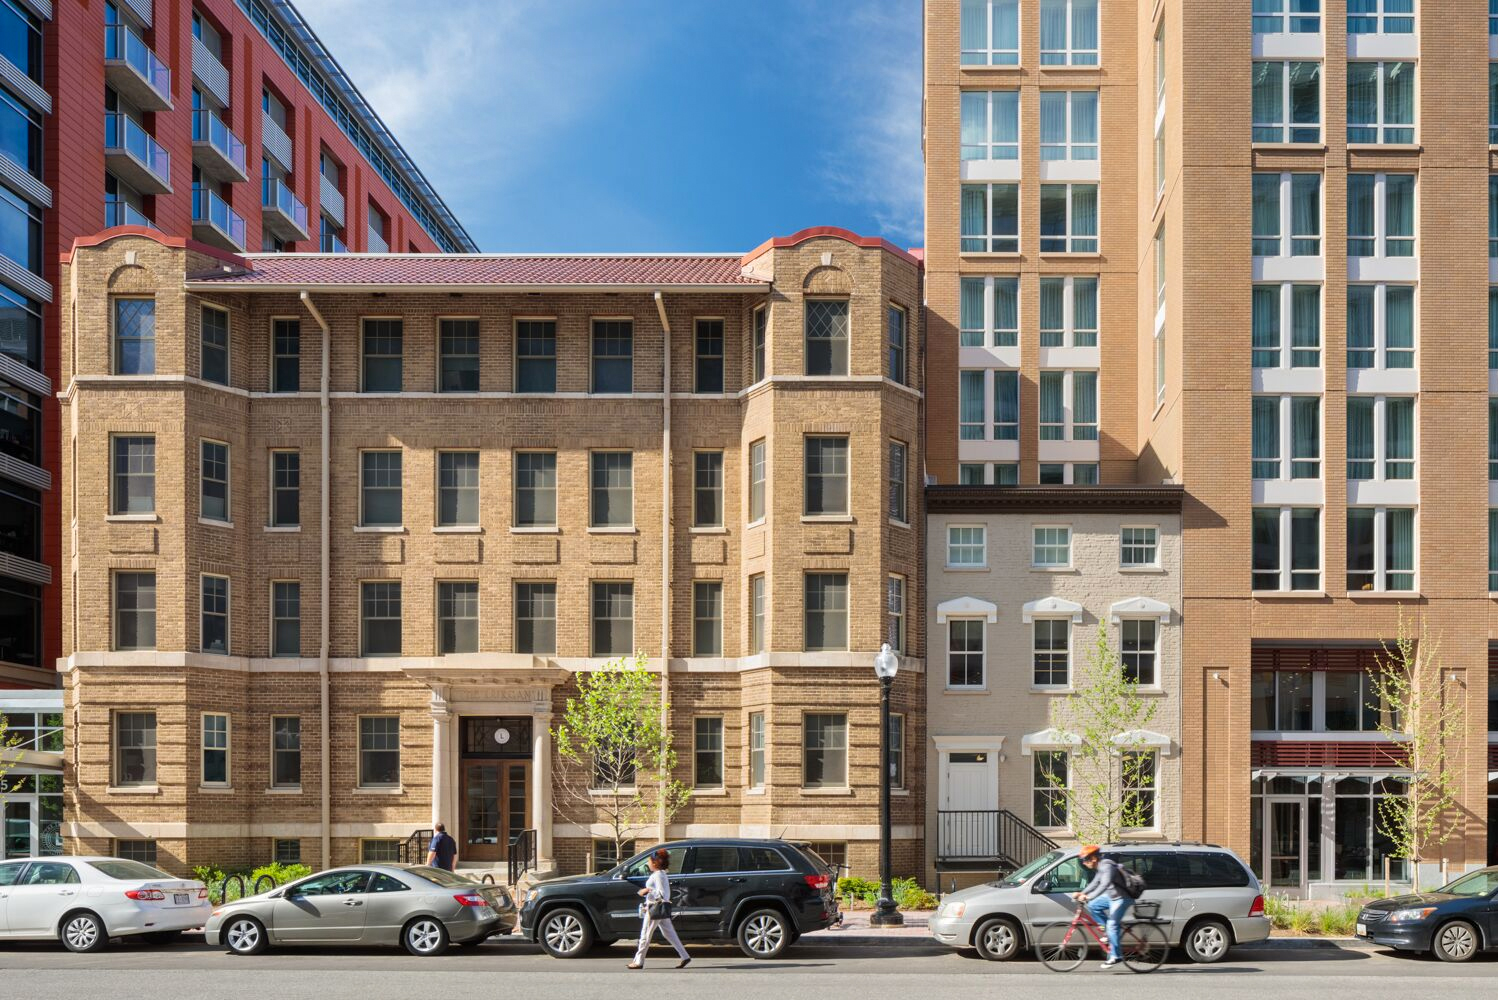 The property is a 12-story mixed-use development with hospitality, residential and retail offerings in the Shaw Historic District in Washington, D.C.